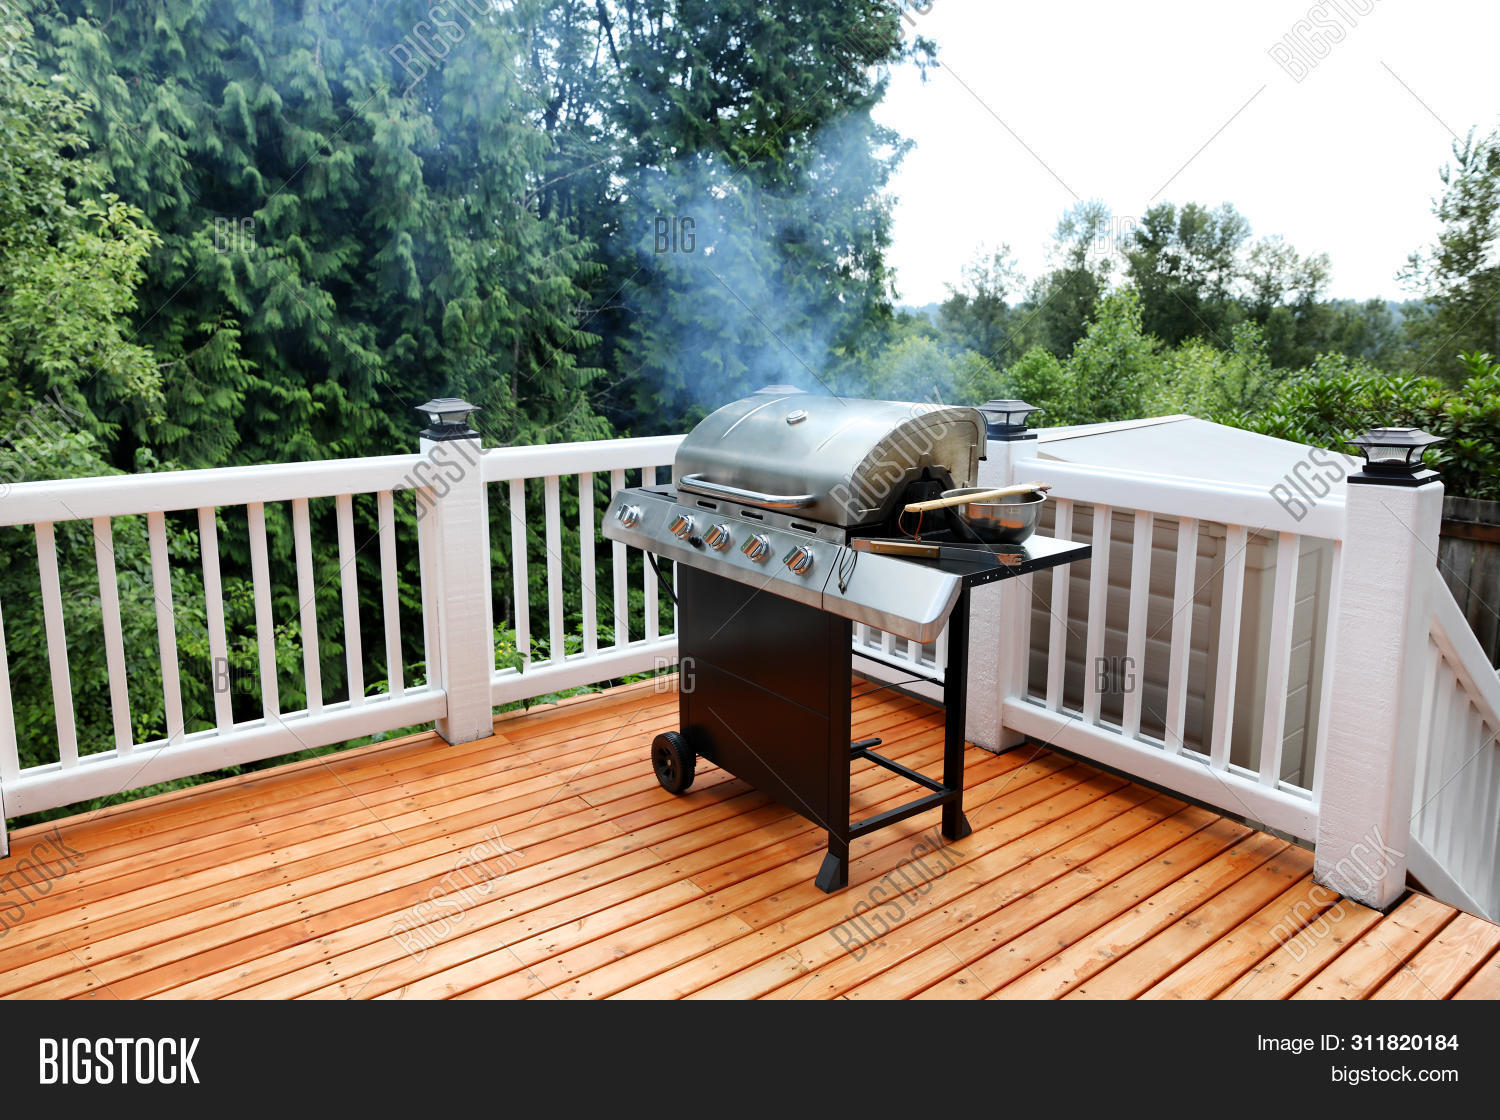 Barbecue Grill Cooking Image Photo Free Trial Stock